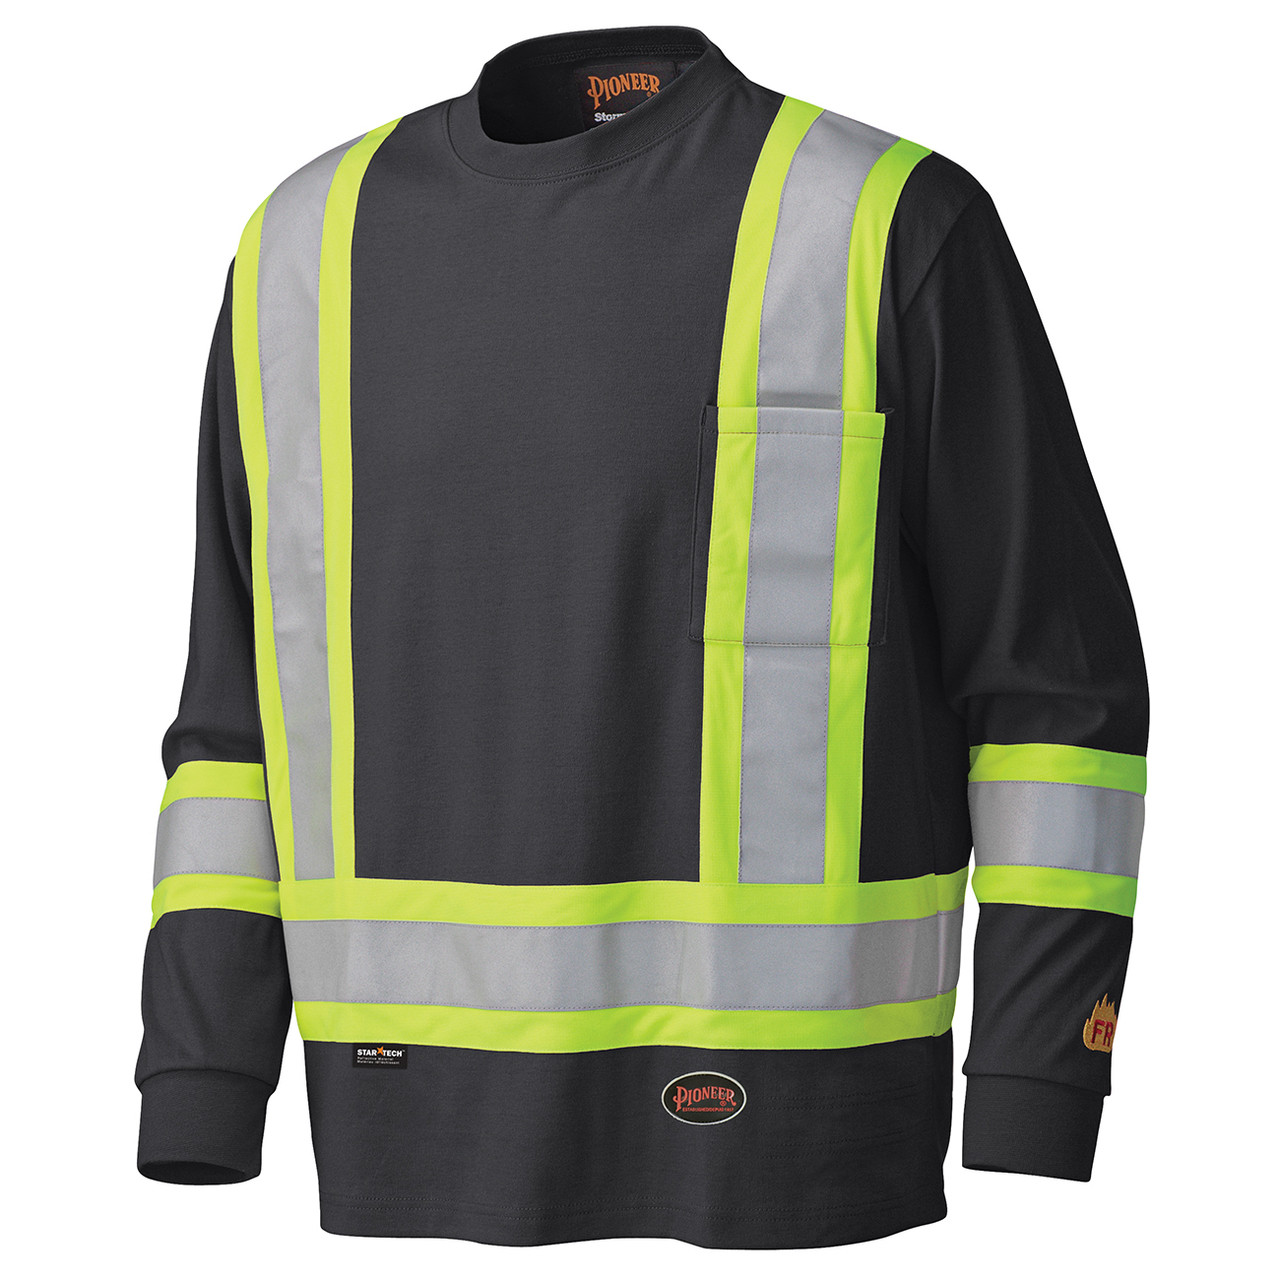 a81d1ab53dab Flame Resistant Long-Sleeved Cotton Safety Shirt Black - Reflect ...